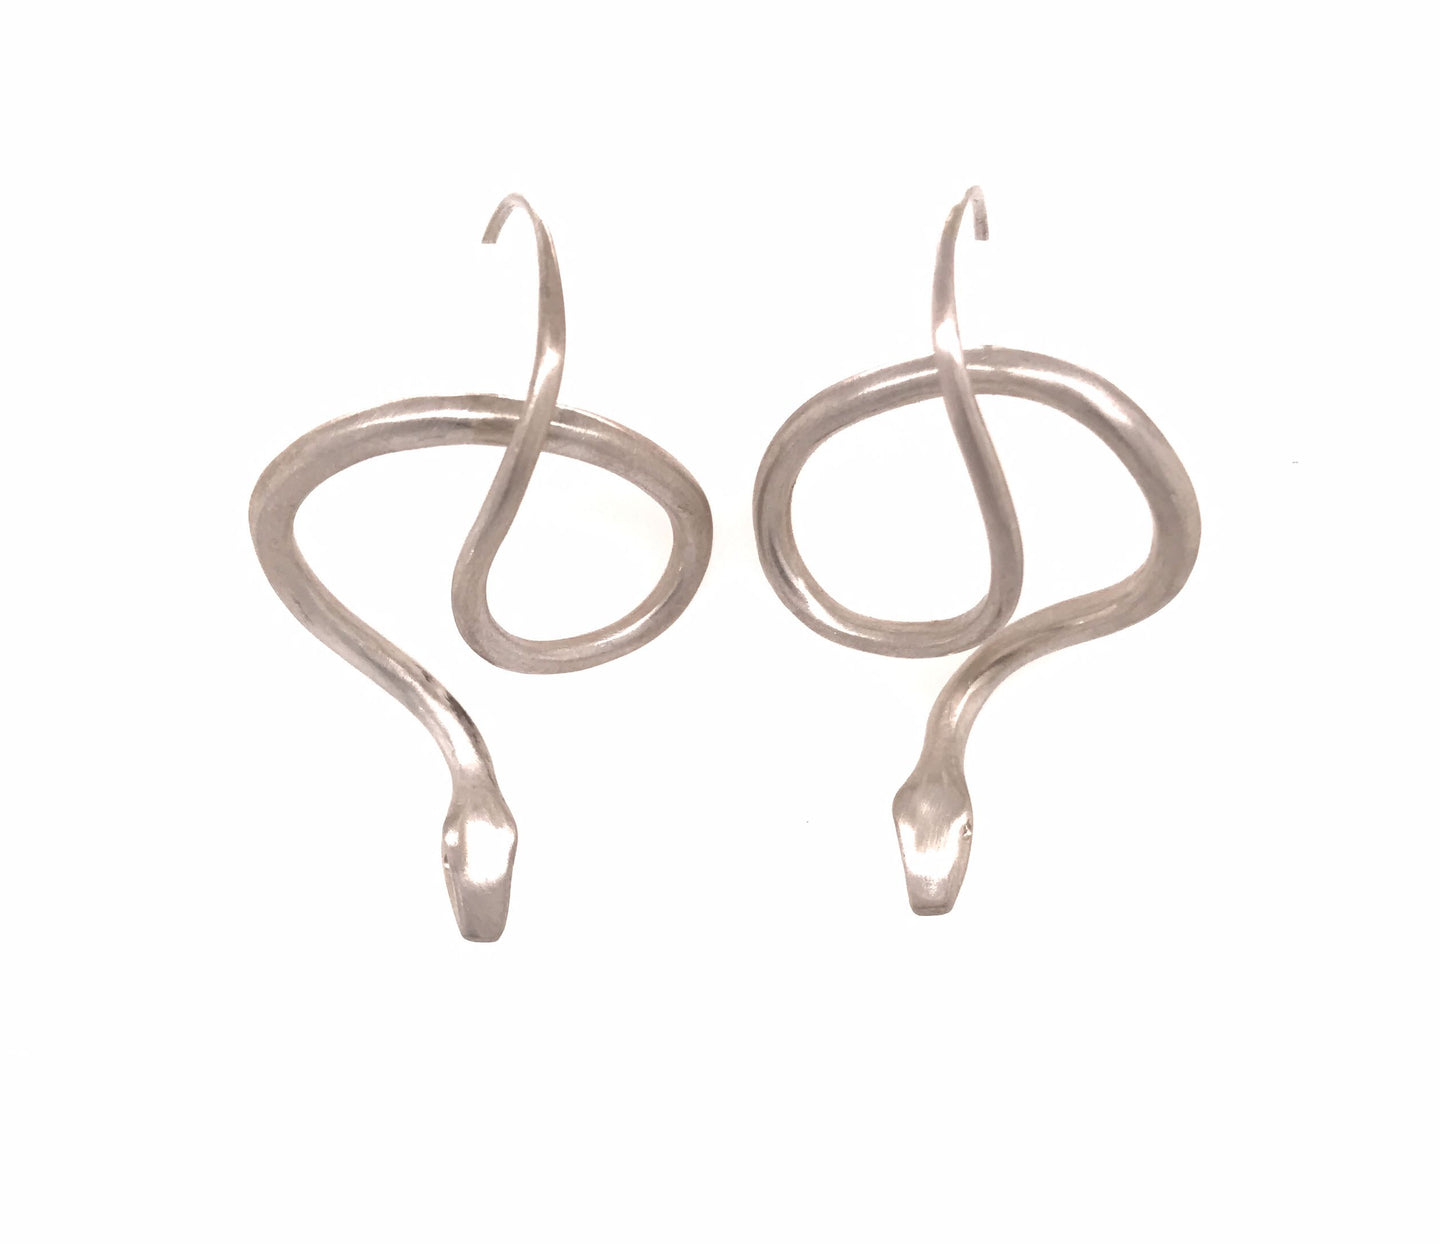 Sterling Silver Serpent Earrings | Art + Soul Gallery